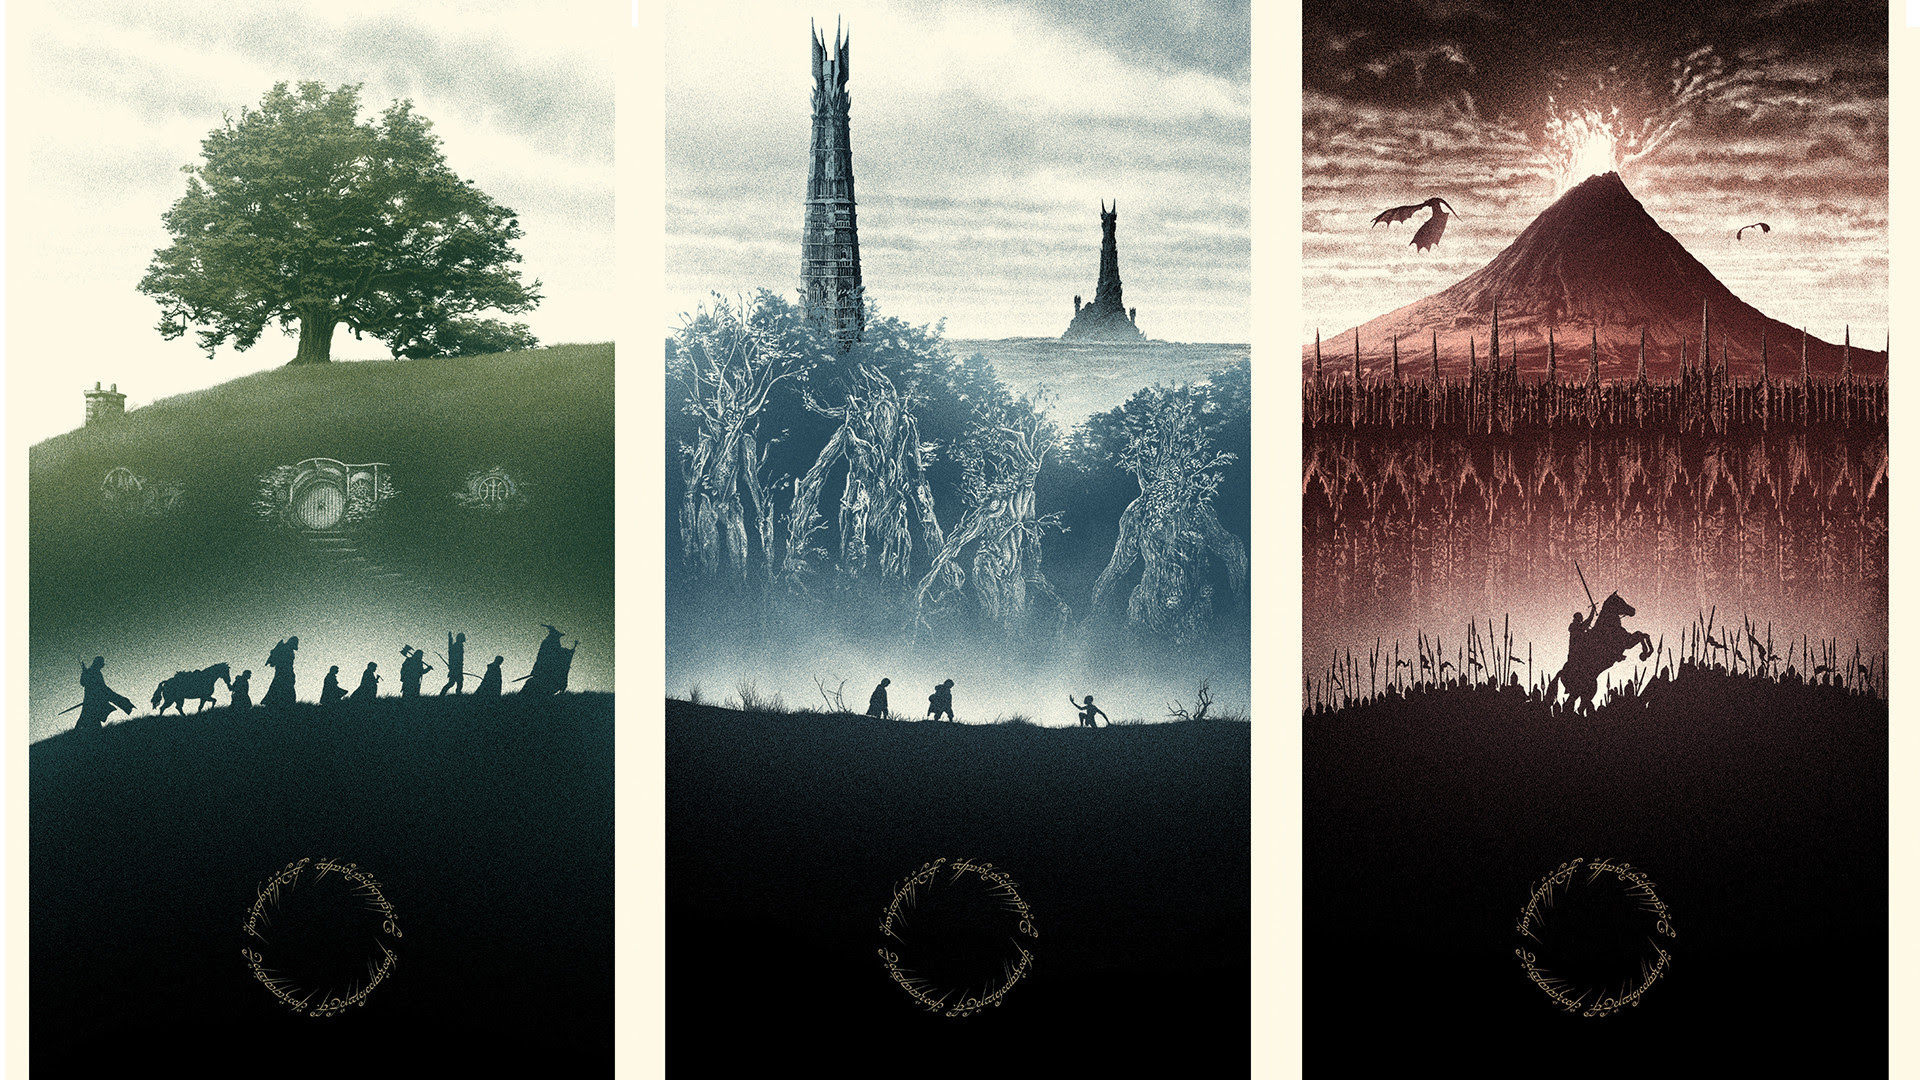 Lord Of The Rings Wallpaper 1920x1080 Wallpapers